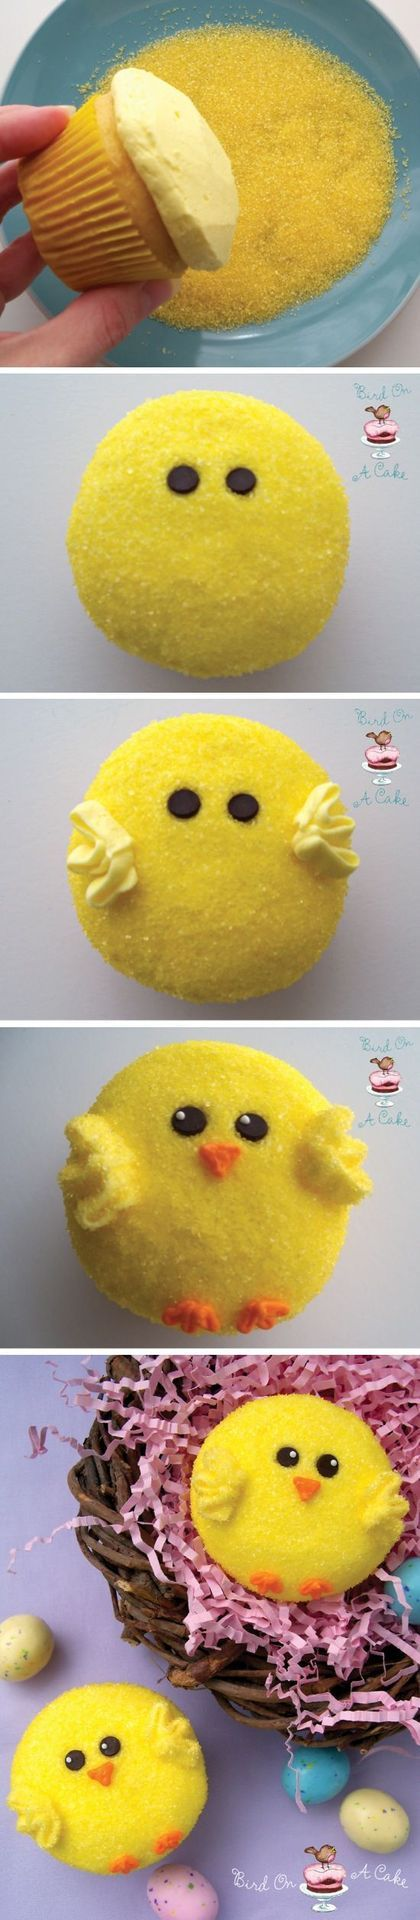 JUST IN TIME FOR EASTER! Easter Chick Cupcakes